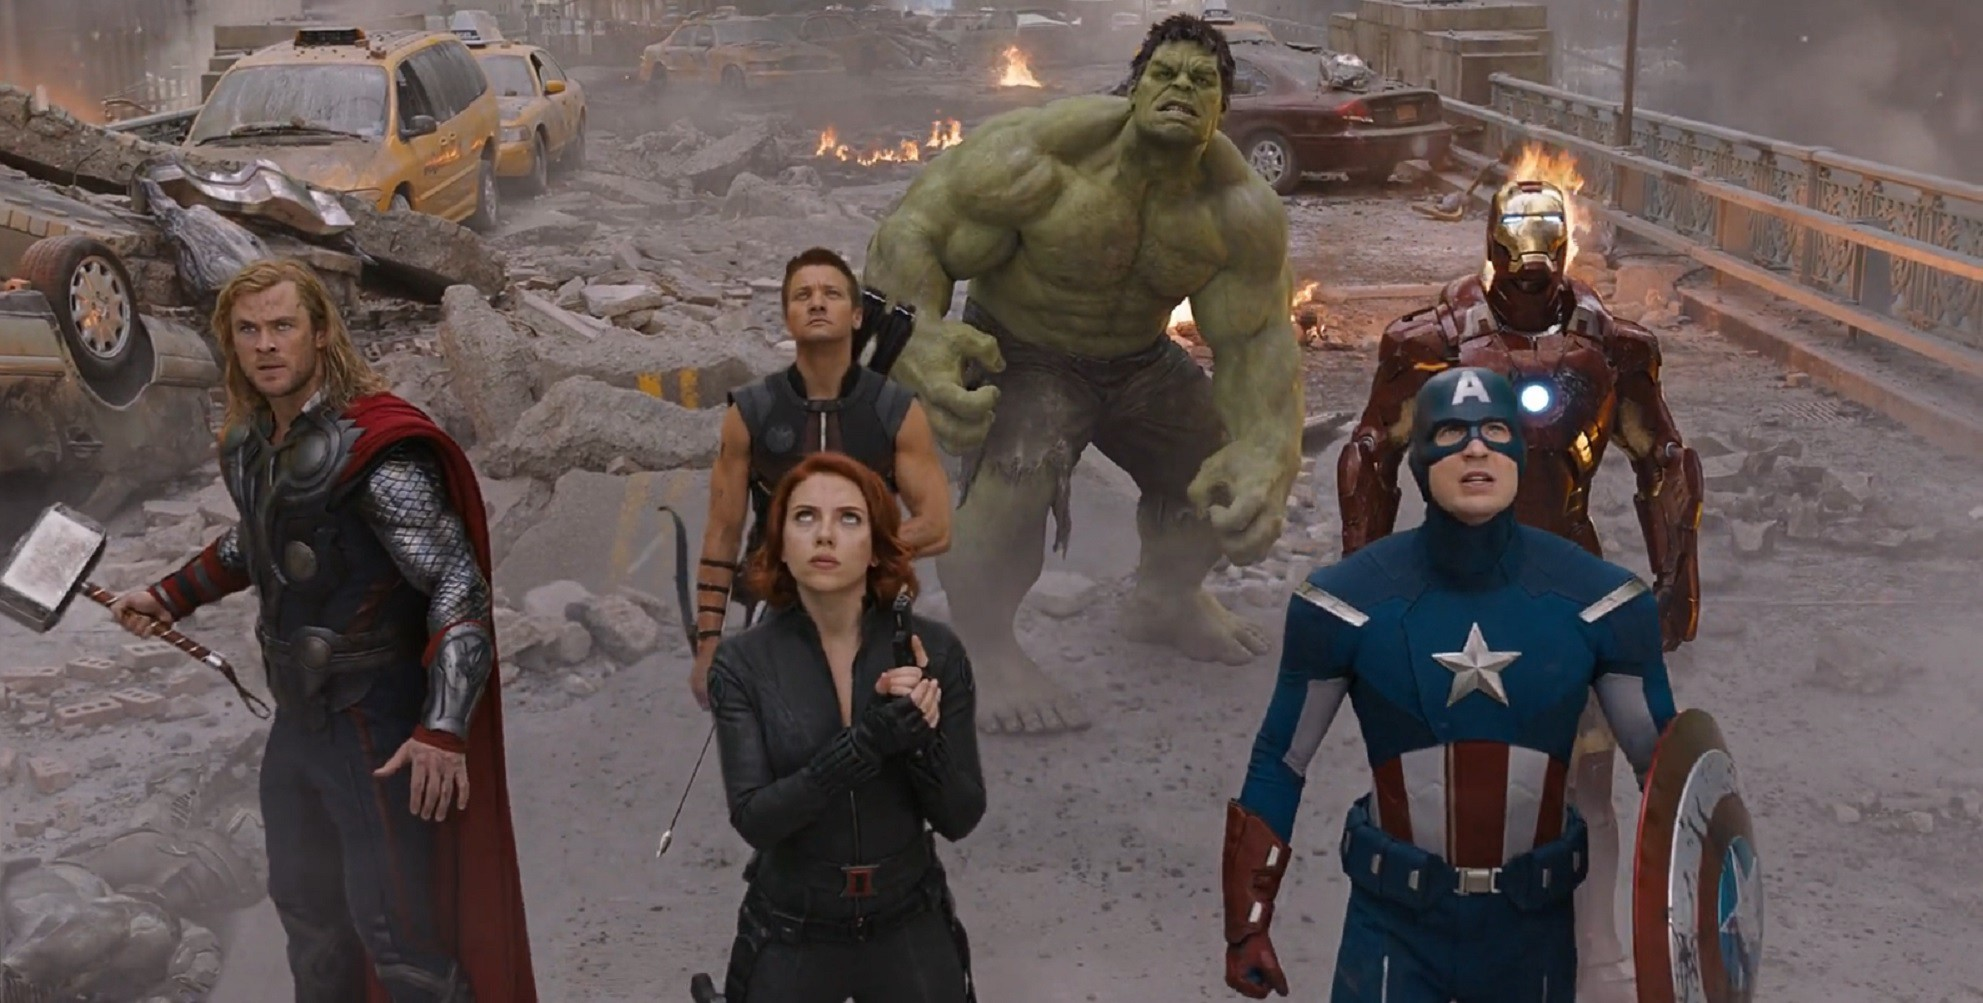 MCU Rewind: Assembling the Avengers Was An Impossible Task, But ...